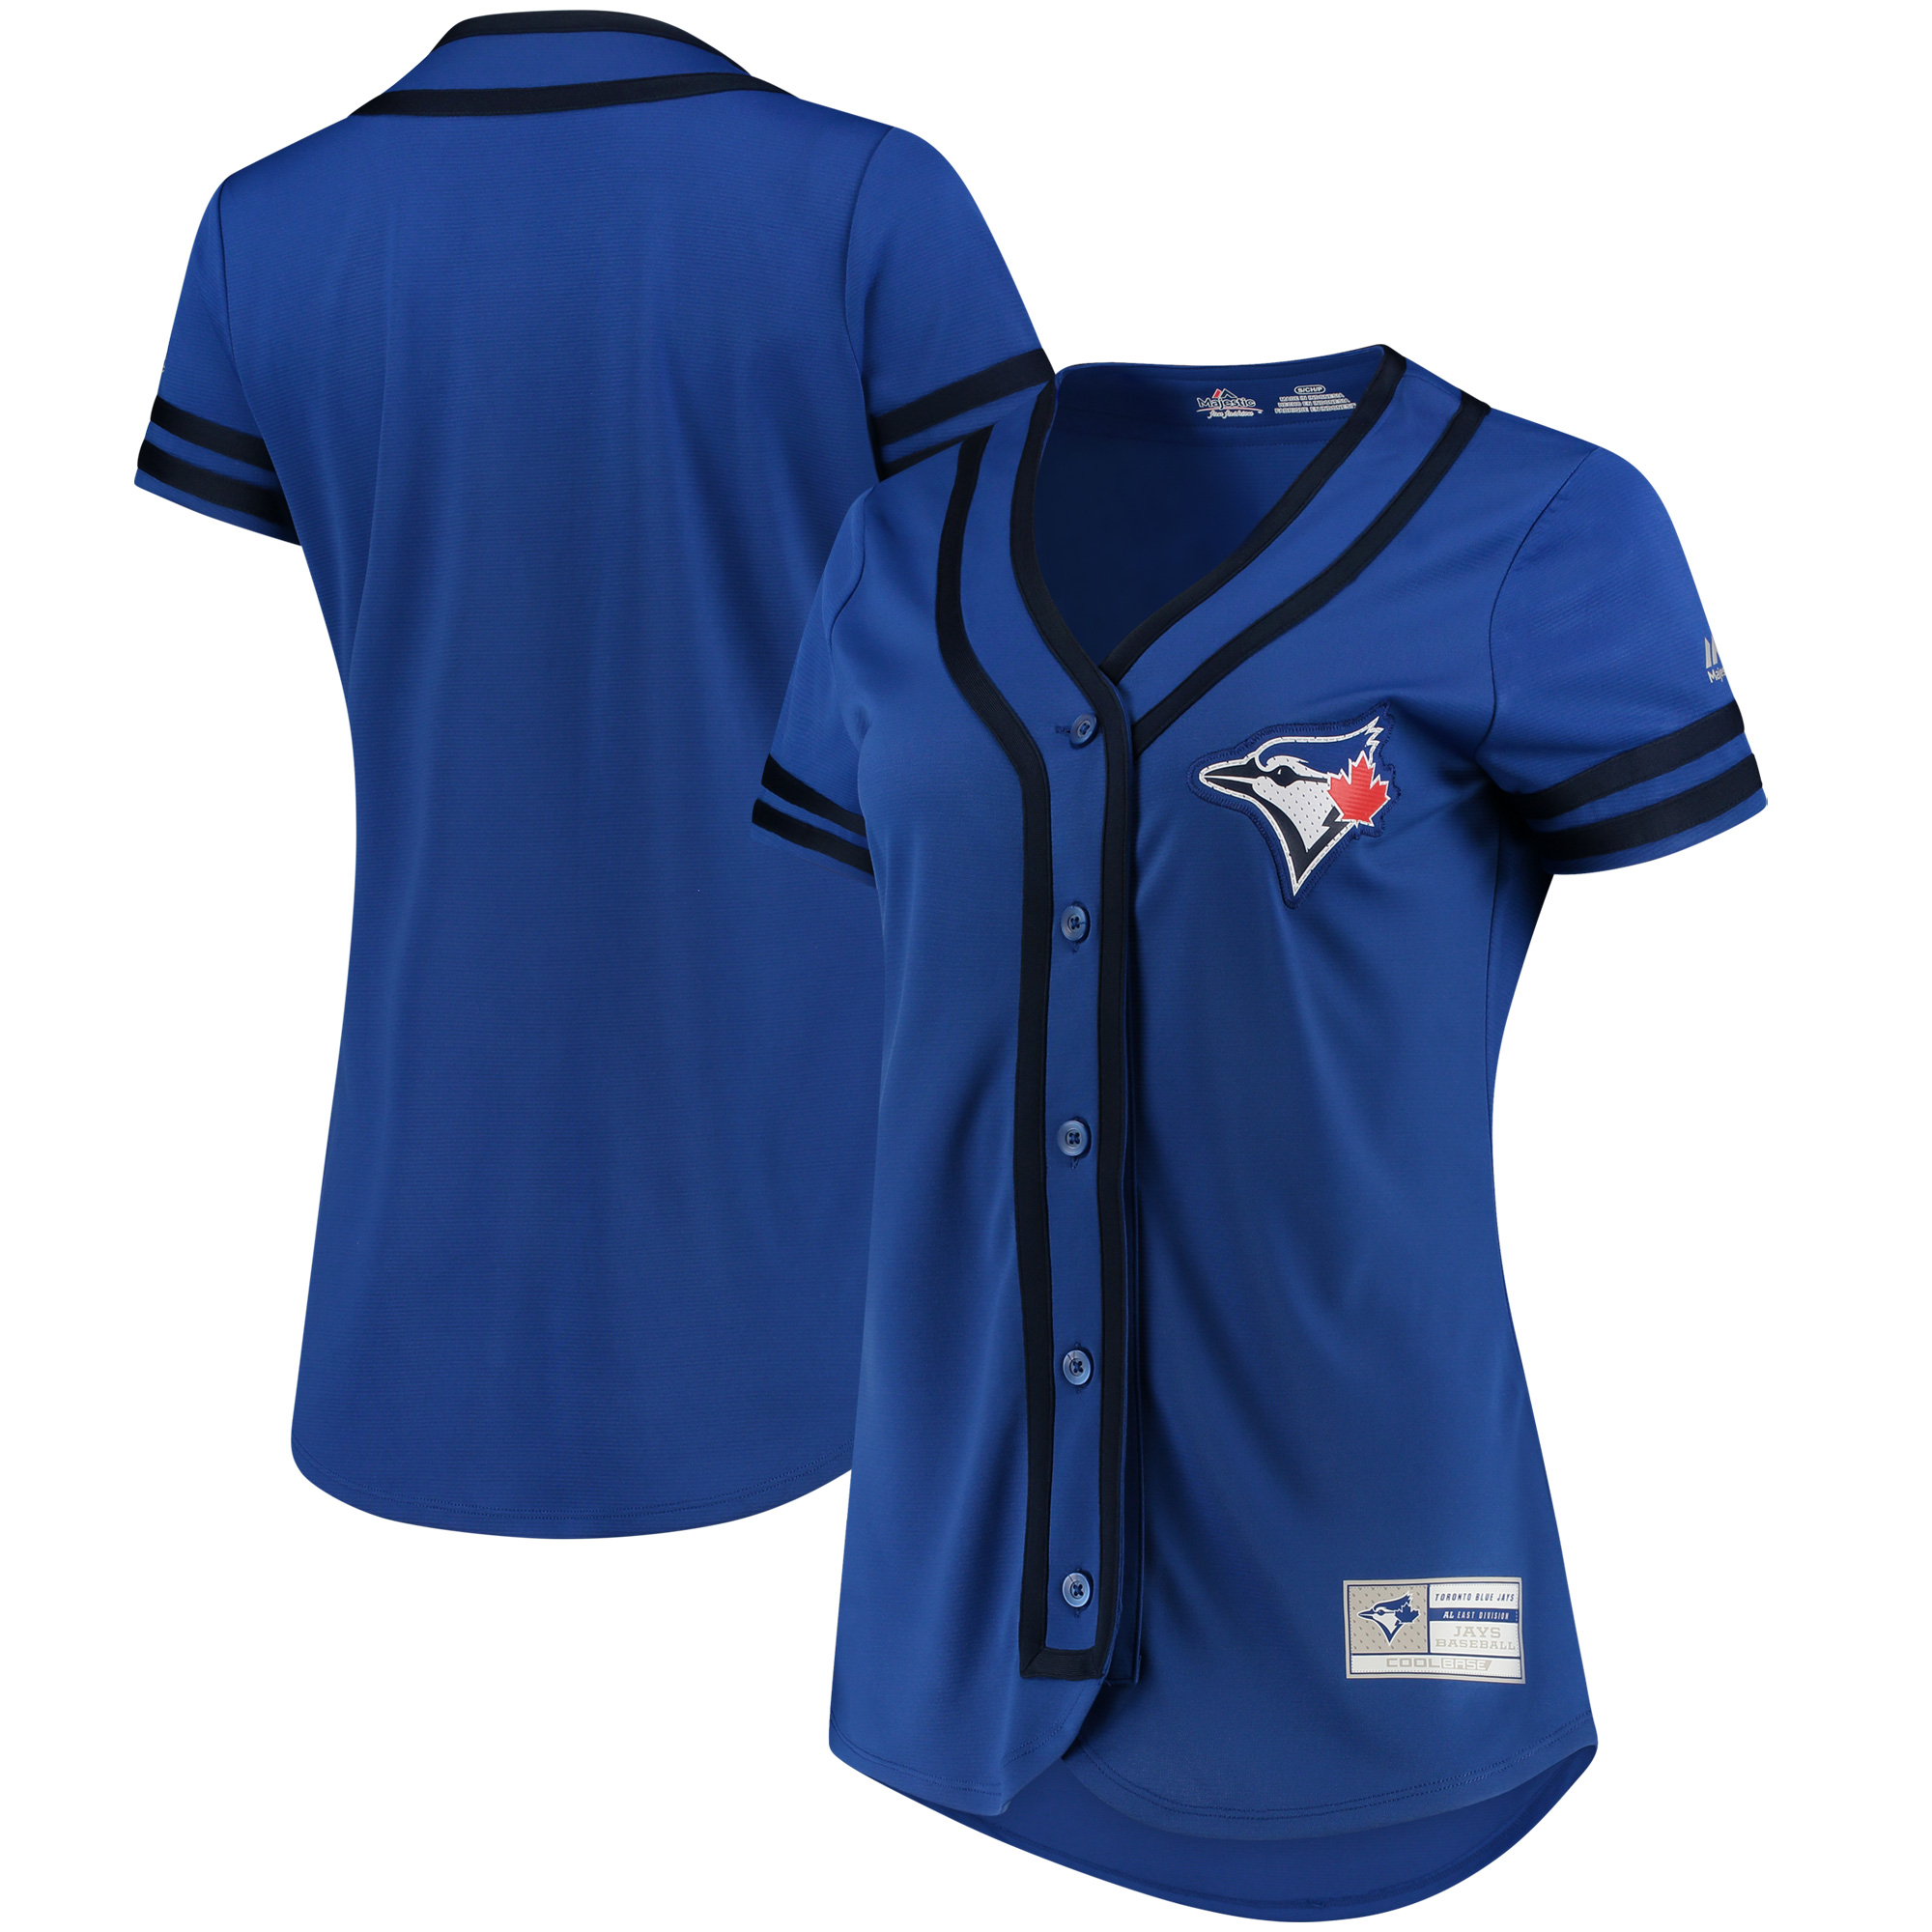 Toronto Blue Jays Majestic Women's Absolute Victory Fashion Team Jersey - Royal/Navy